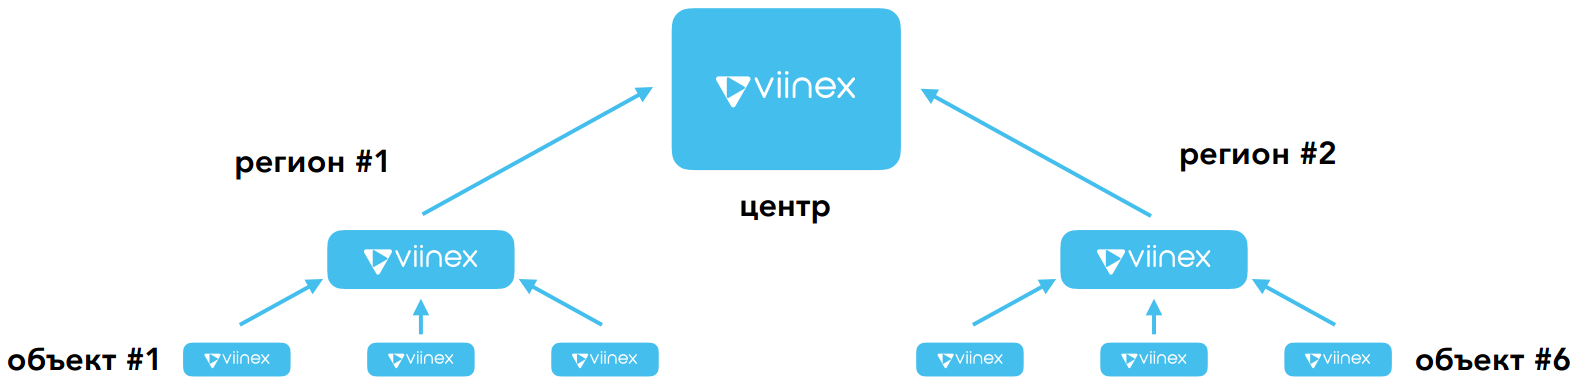 Start/hiararchy of Viinex instances